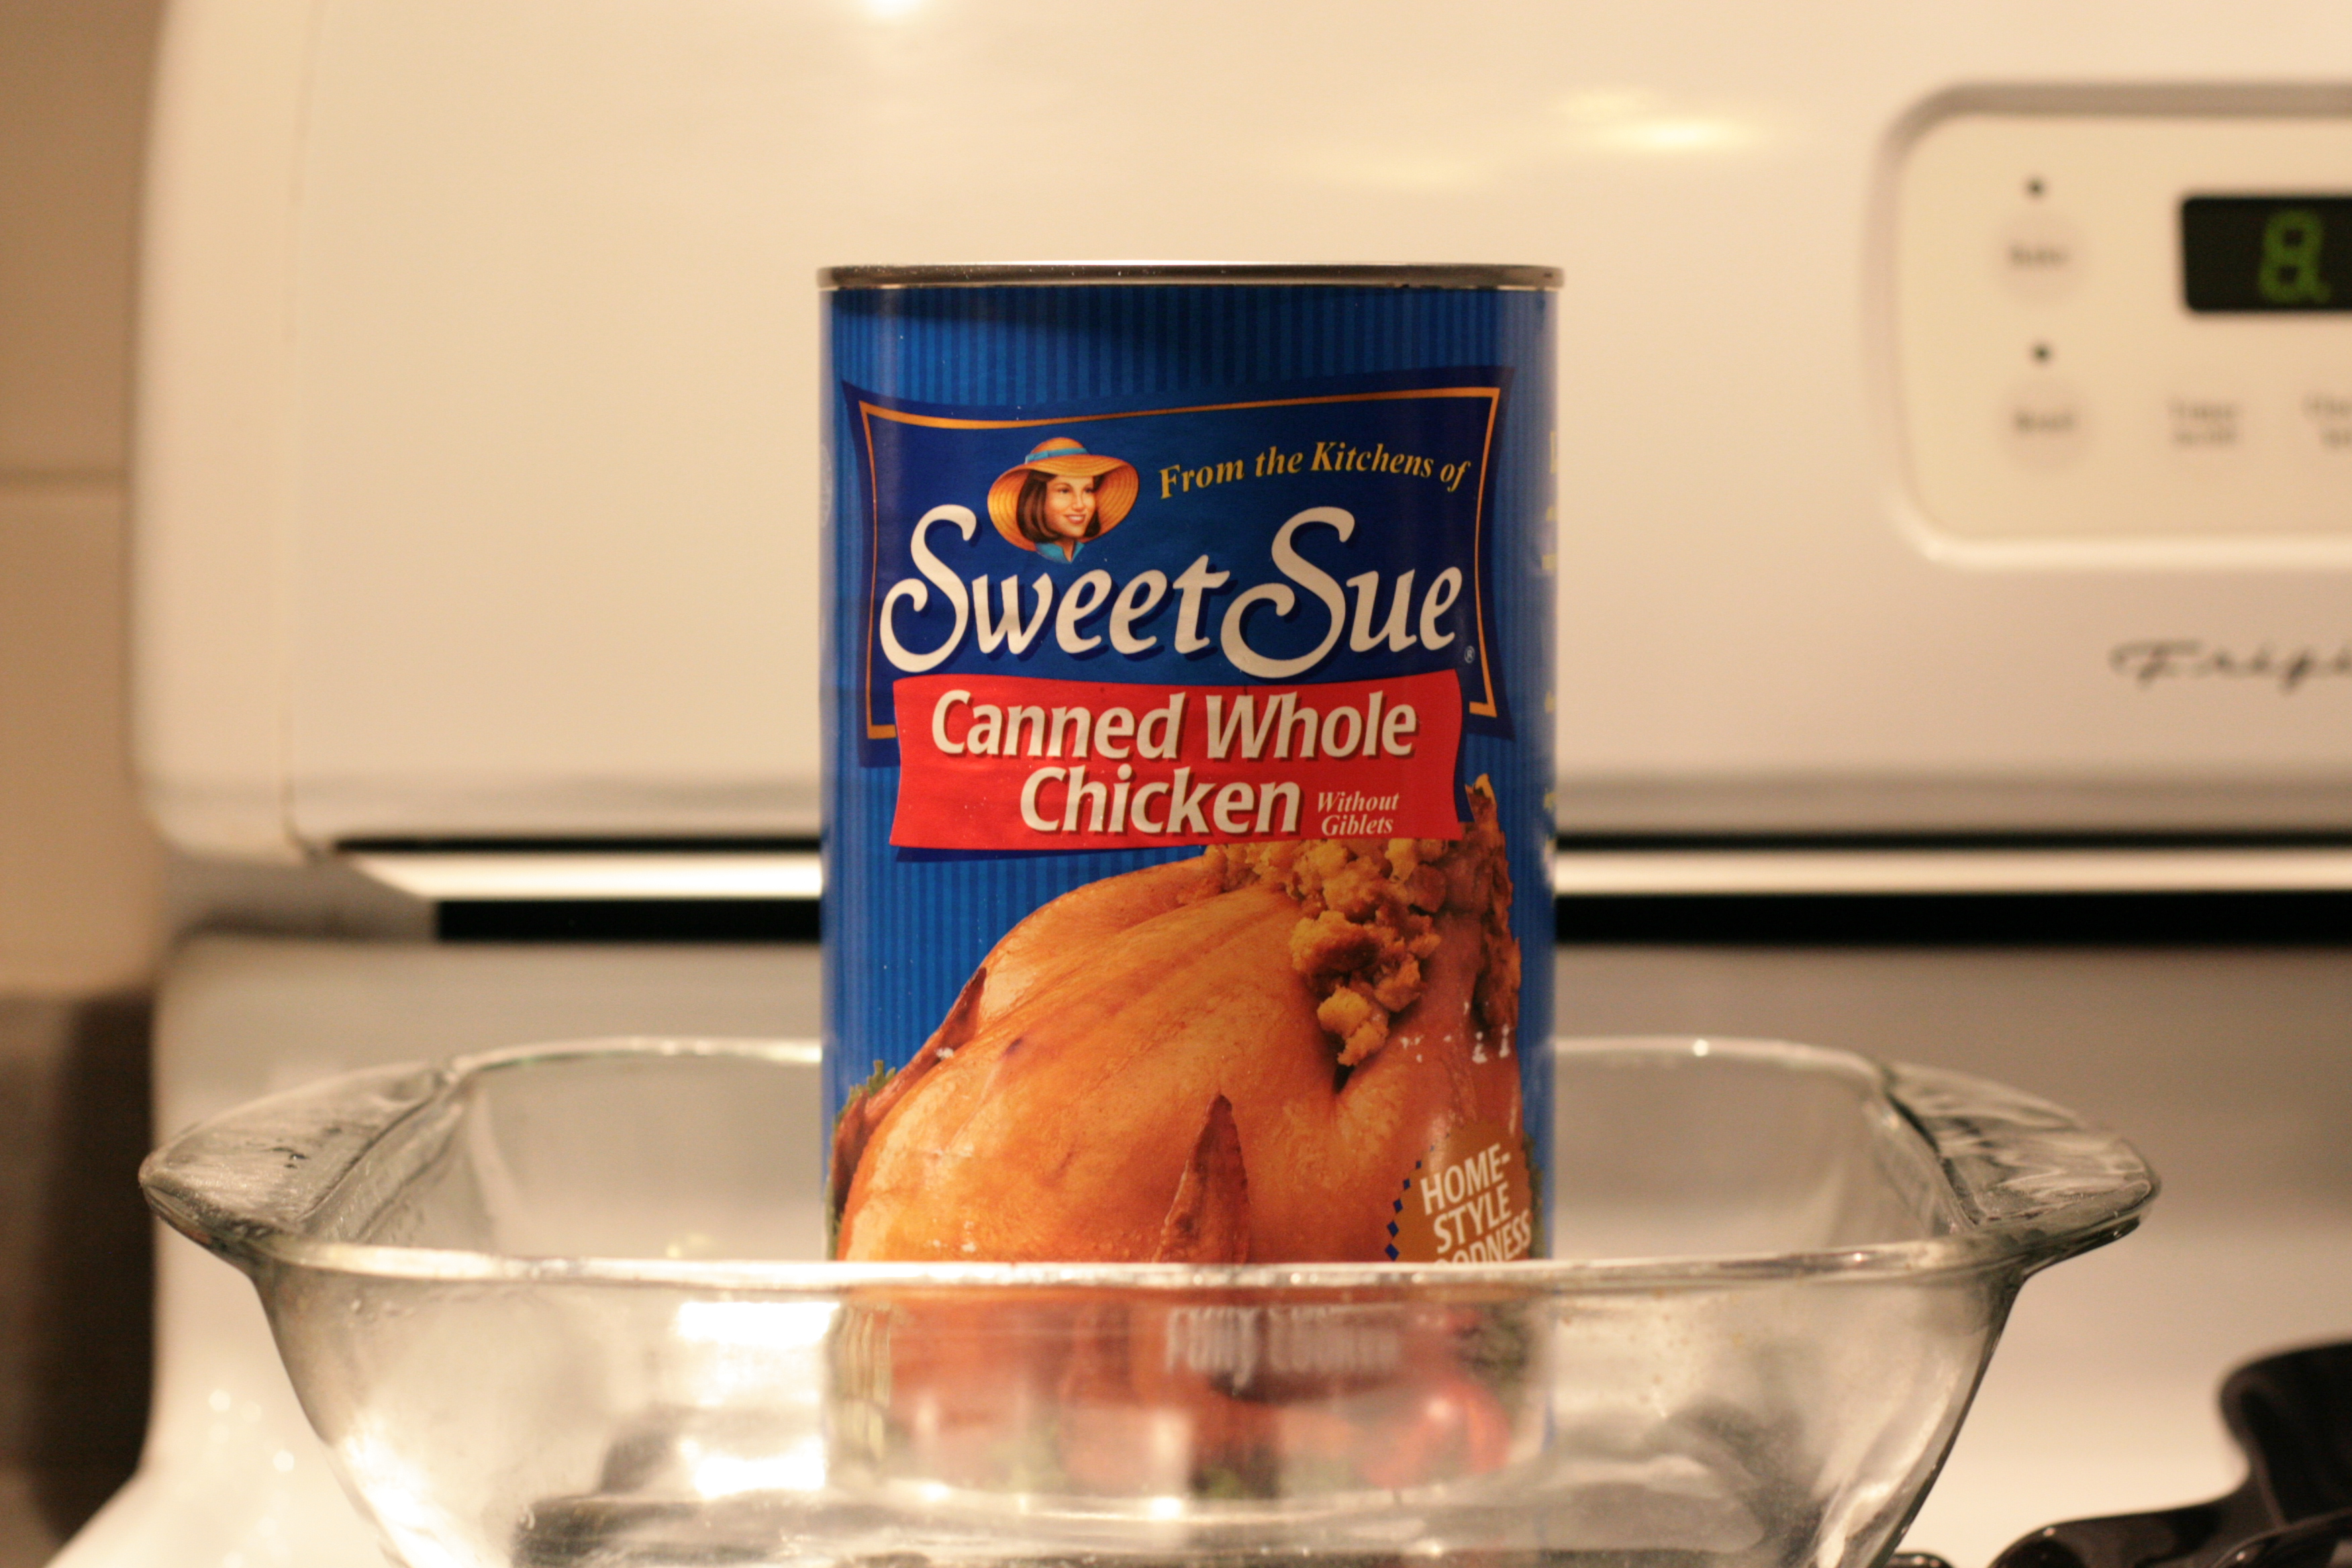 Sweet sue canned chicken recipes